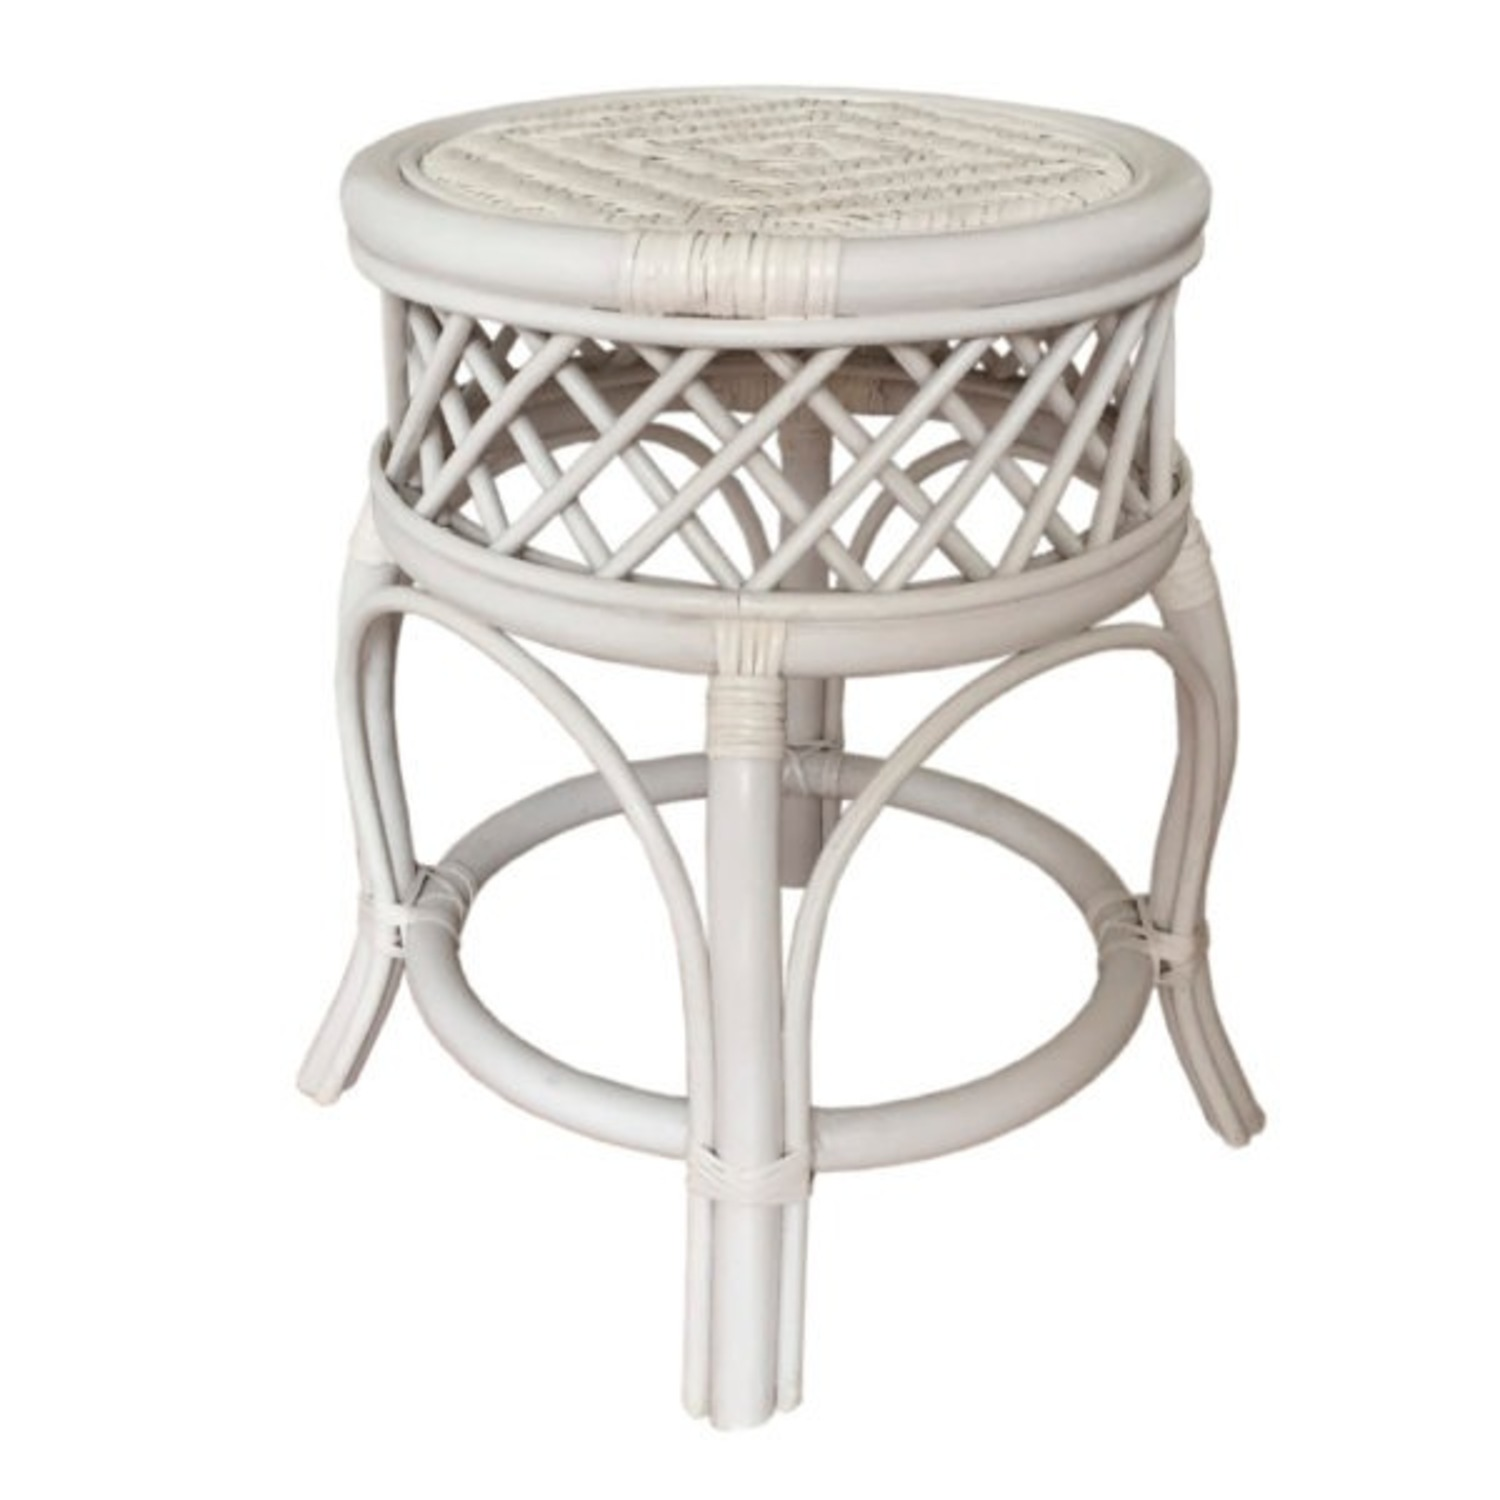 Mary Round White Solid Rattan Stool - image-0